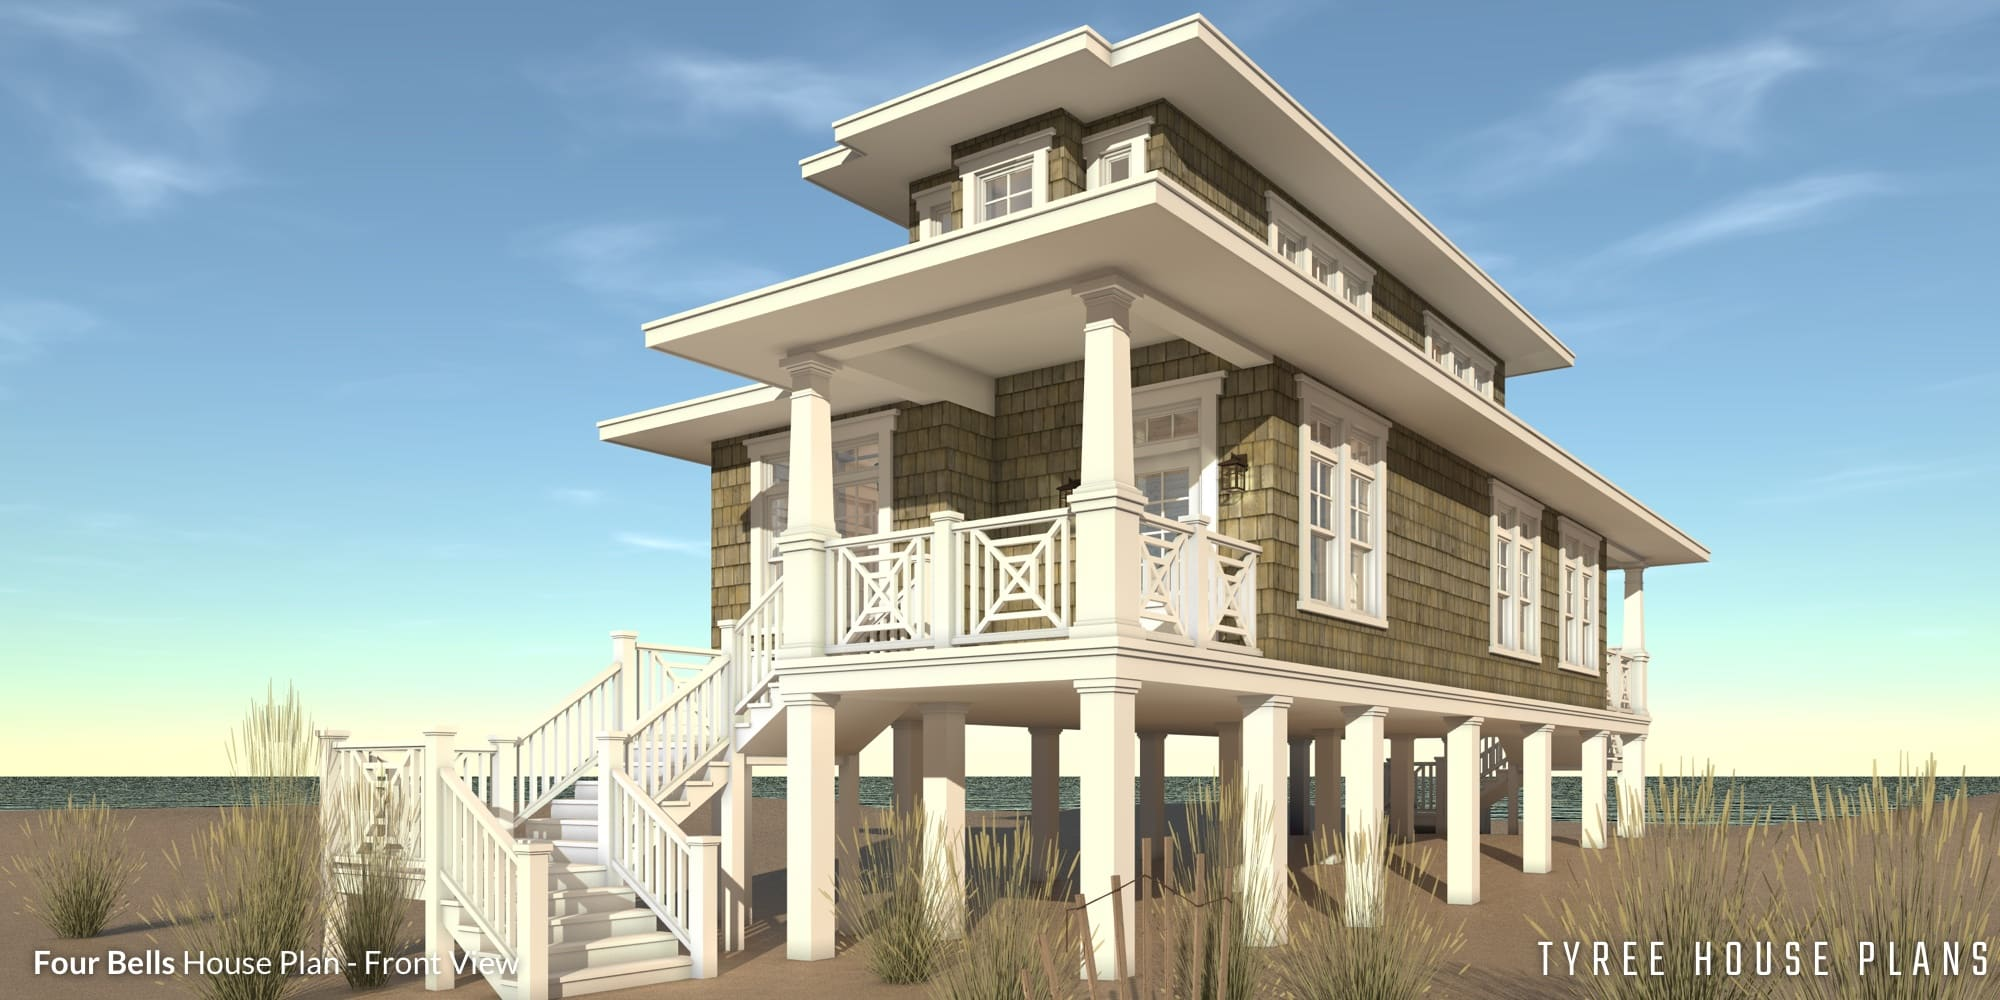 2 Bedroom Beach House. Designed for Narrow Lot. Tyree House Plans. on mountain house plans with view, 3 bedroom house plans with view, hillside house plans with view, contemporary house plans with view, craftsman house plans with view, ranch house plans with view, small house plans with view, open floor plans with view,